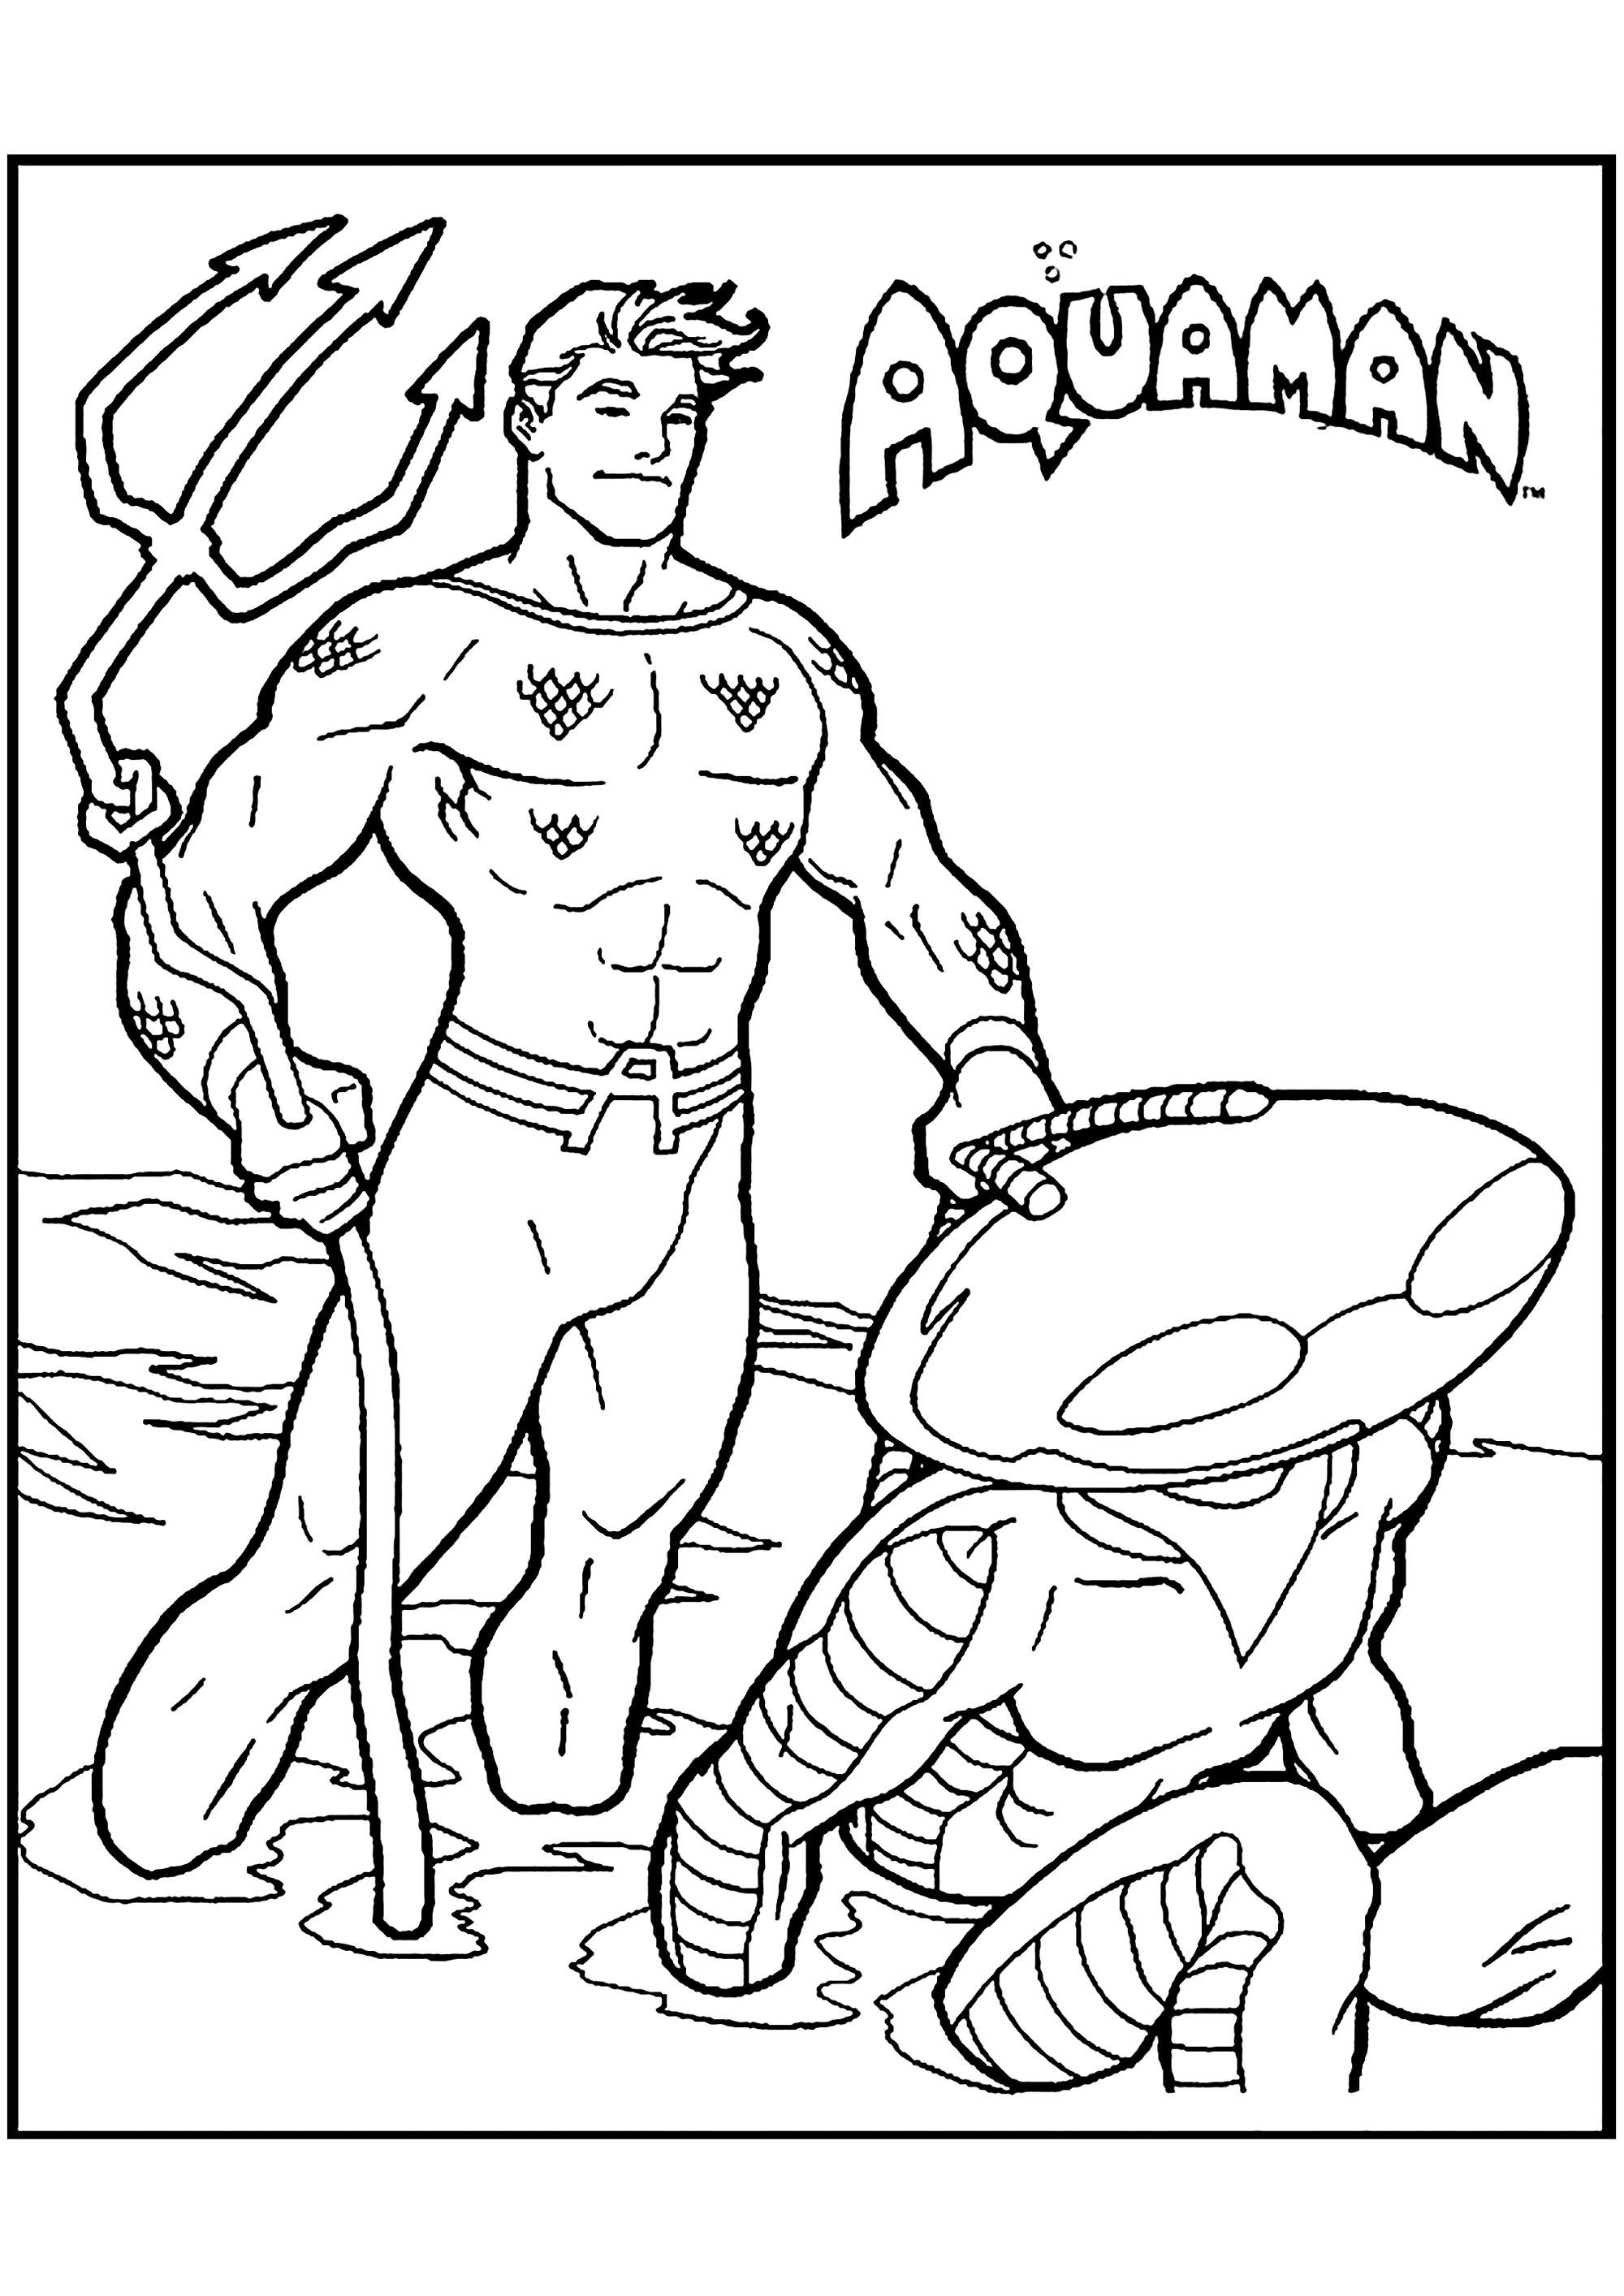 Aquaman coloring page to print and color